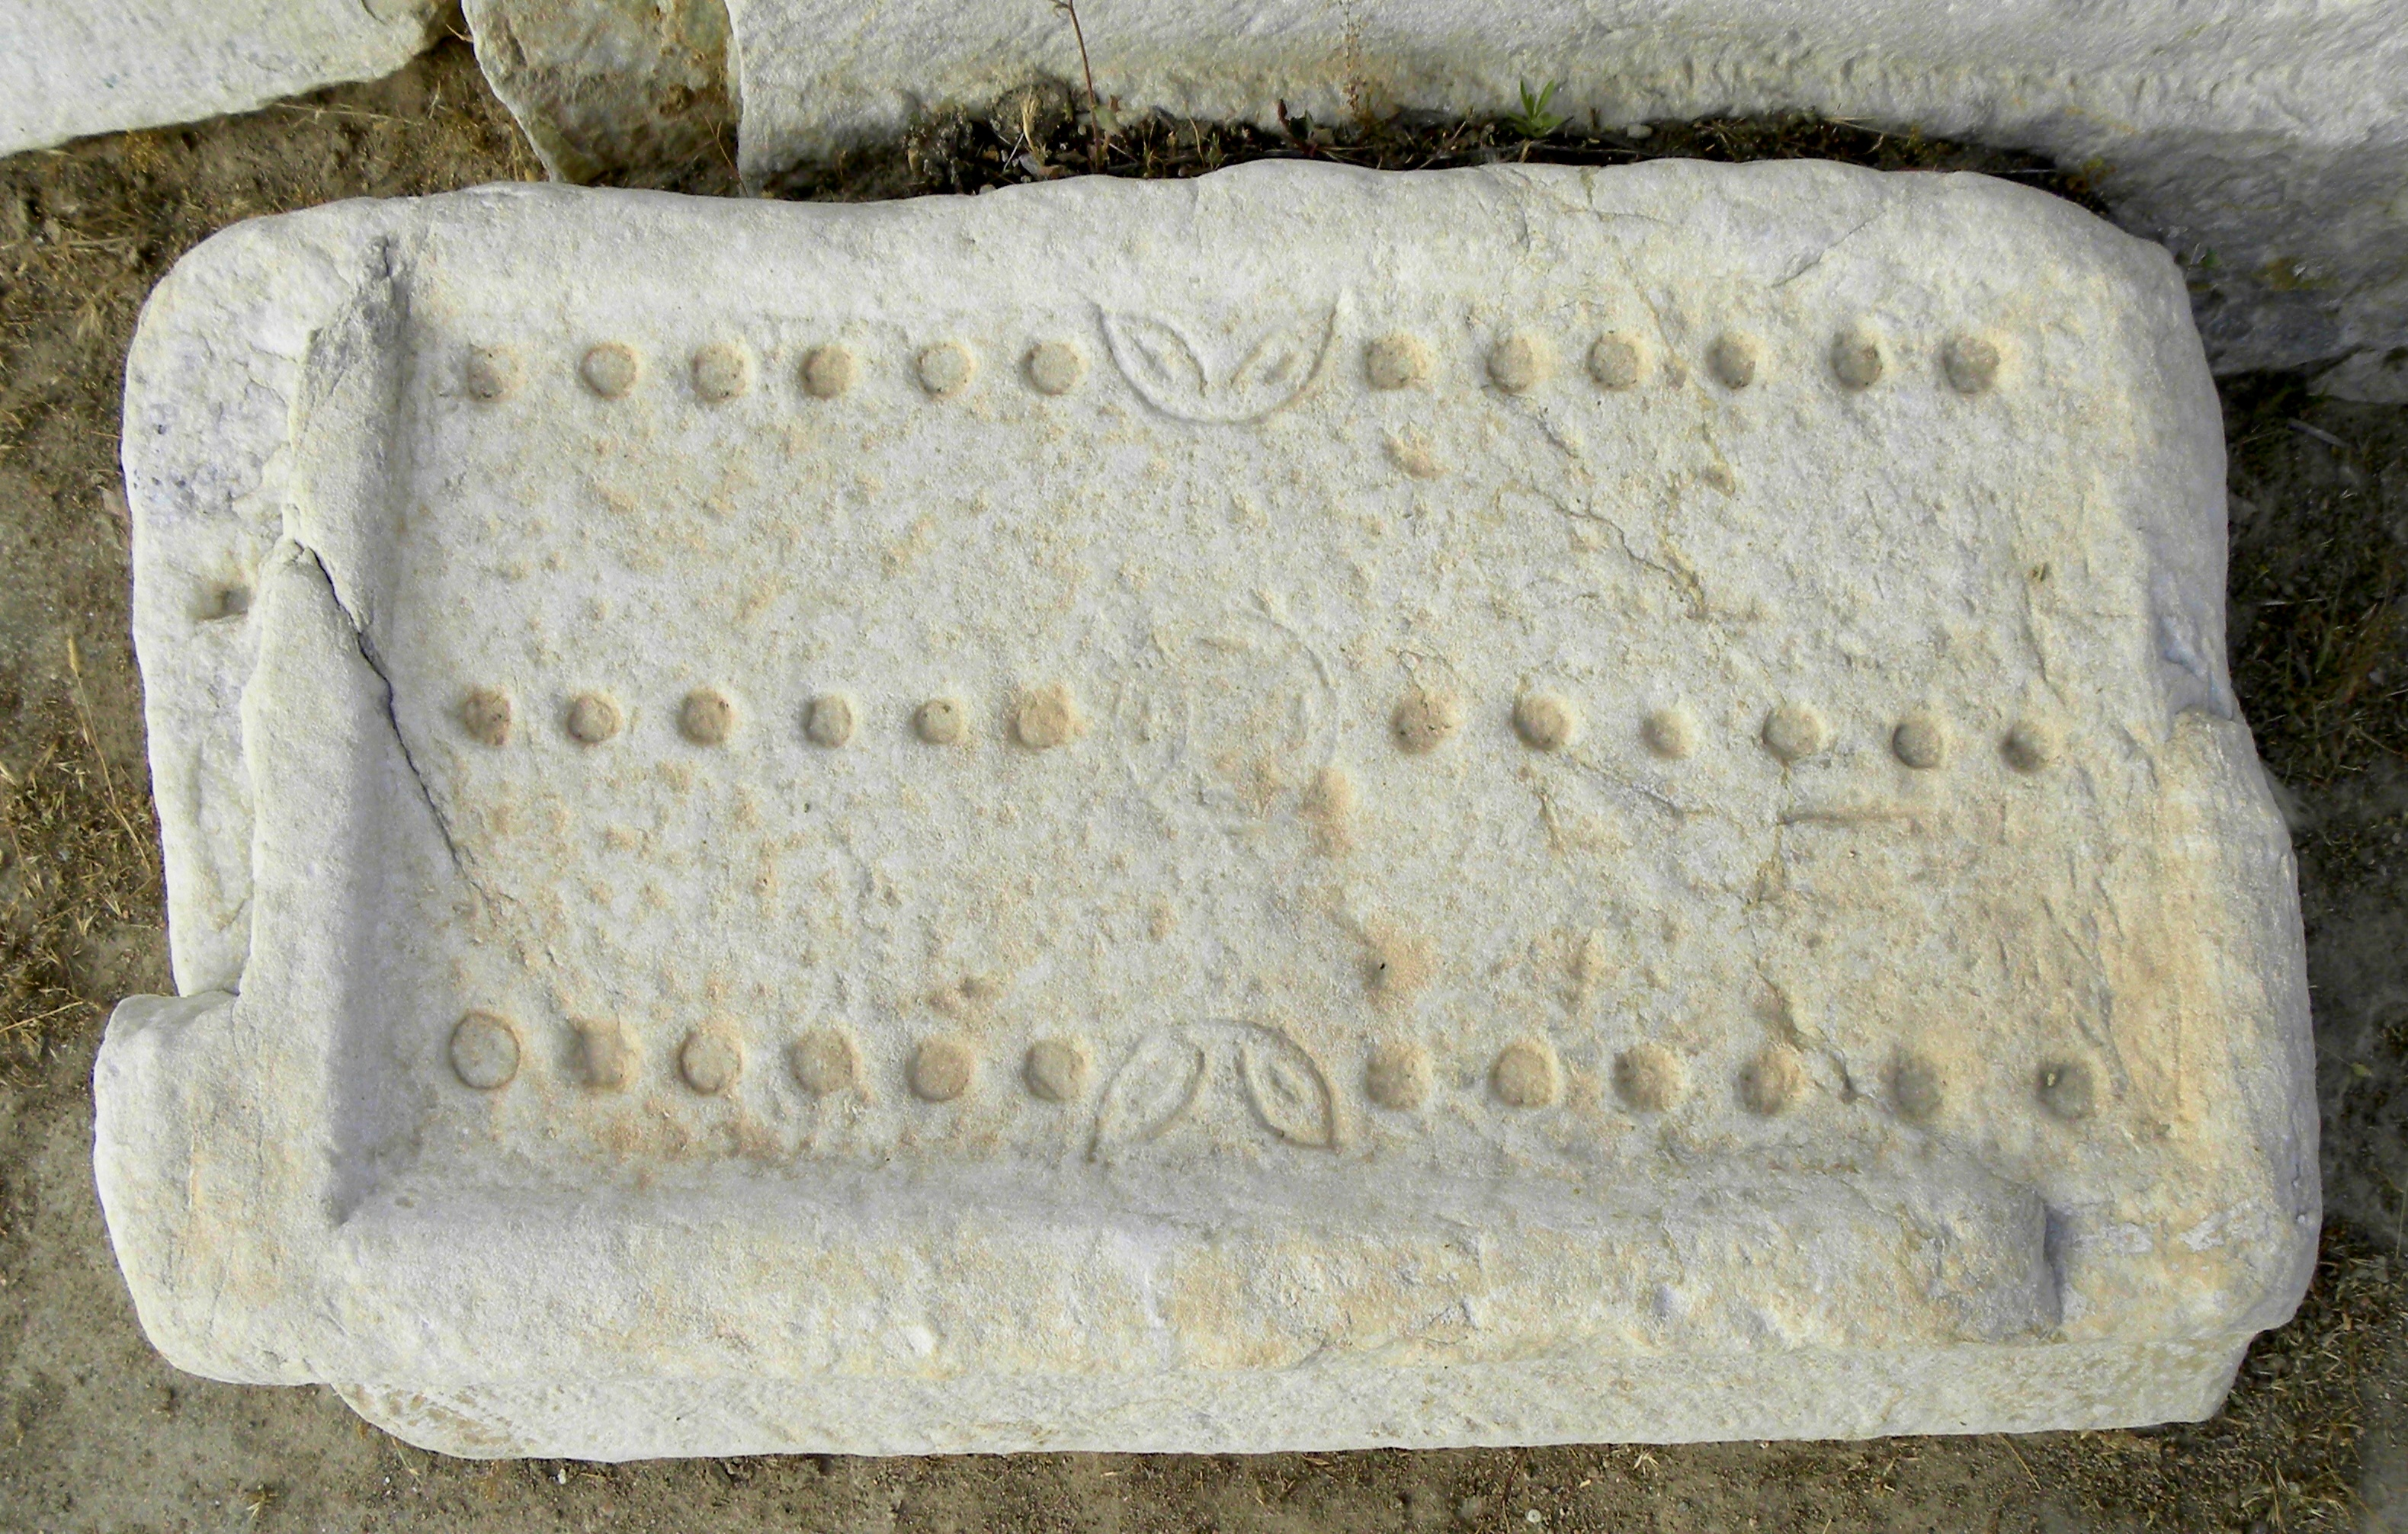 Duodecim Scripta in Roman Laodicea, Turkey. Photo: Ian Scott, May 9, 2010.